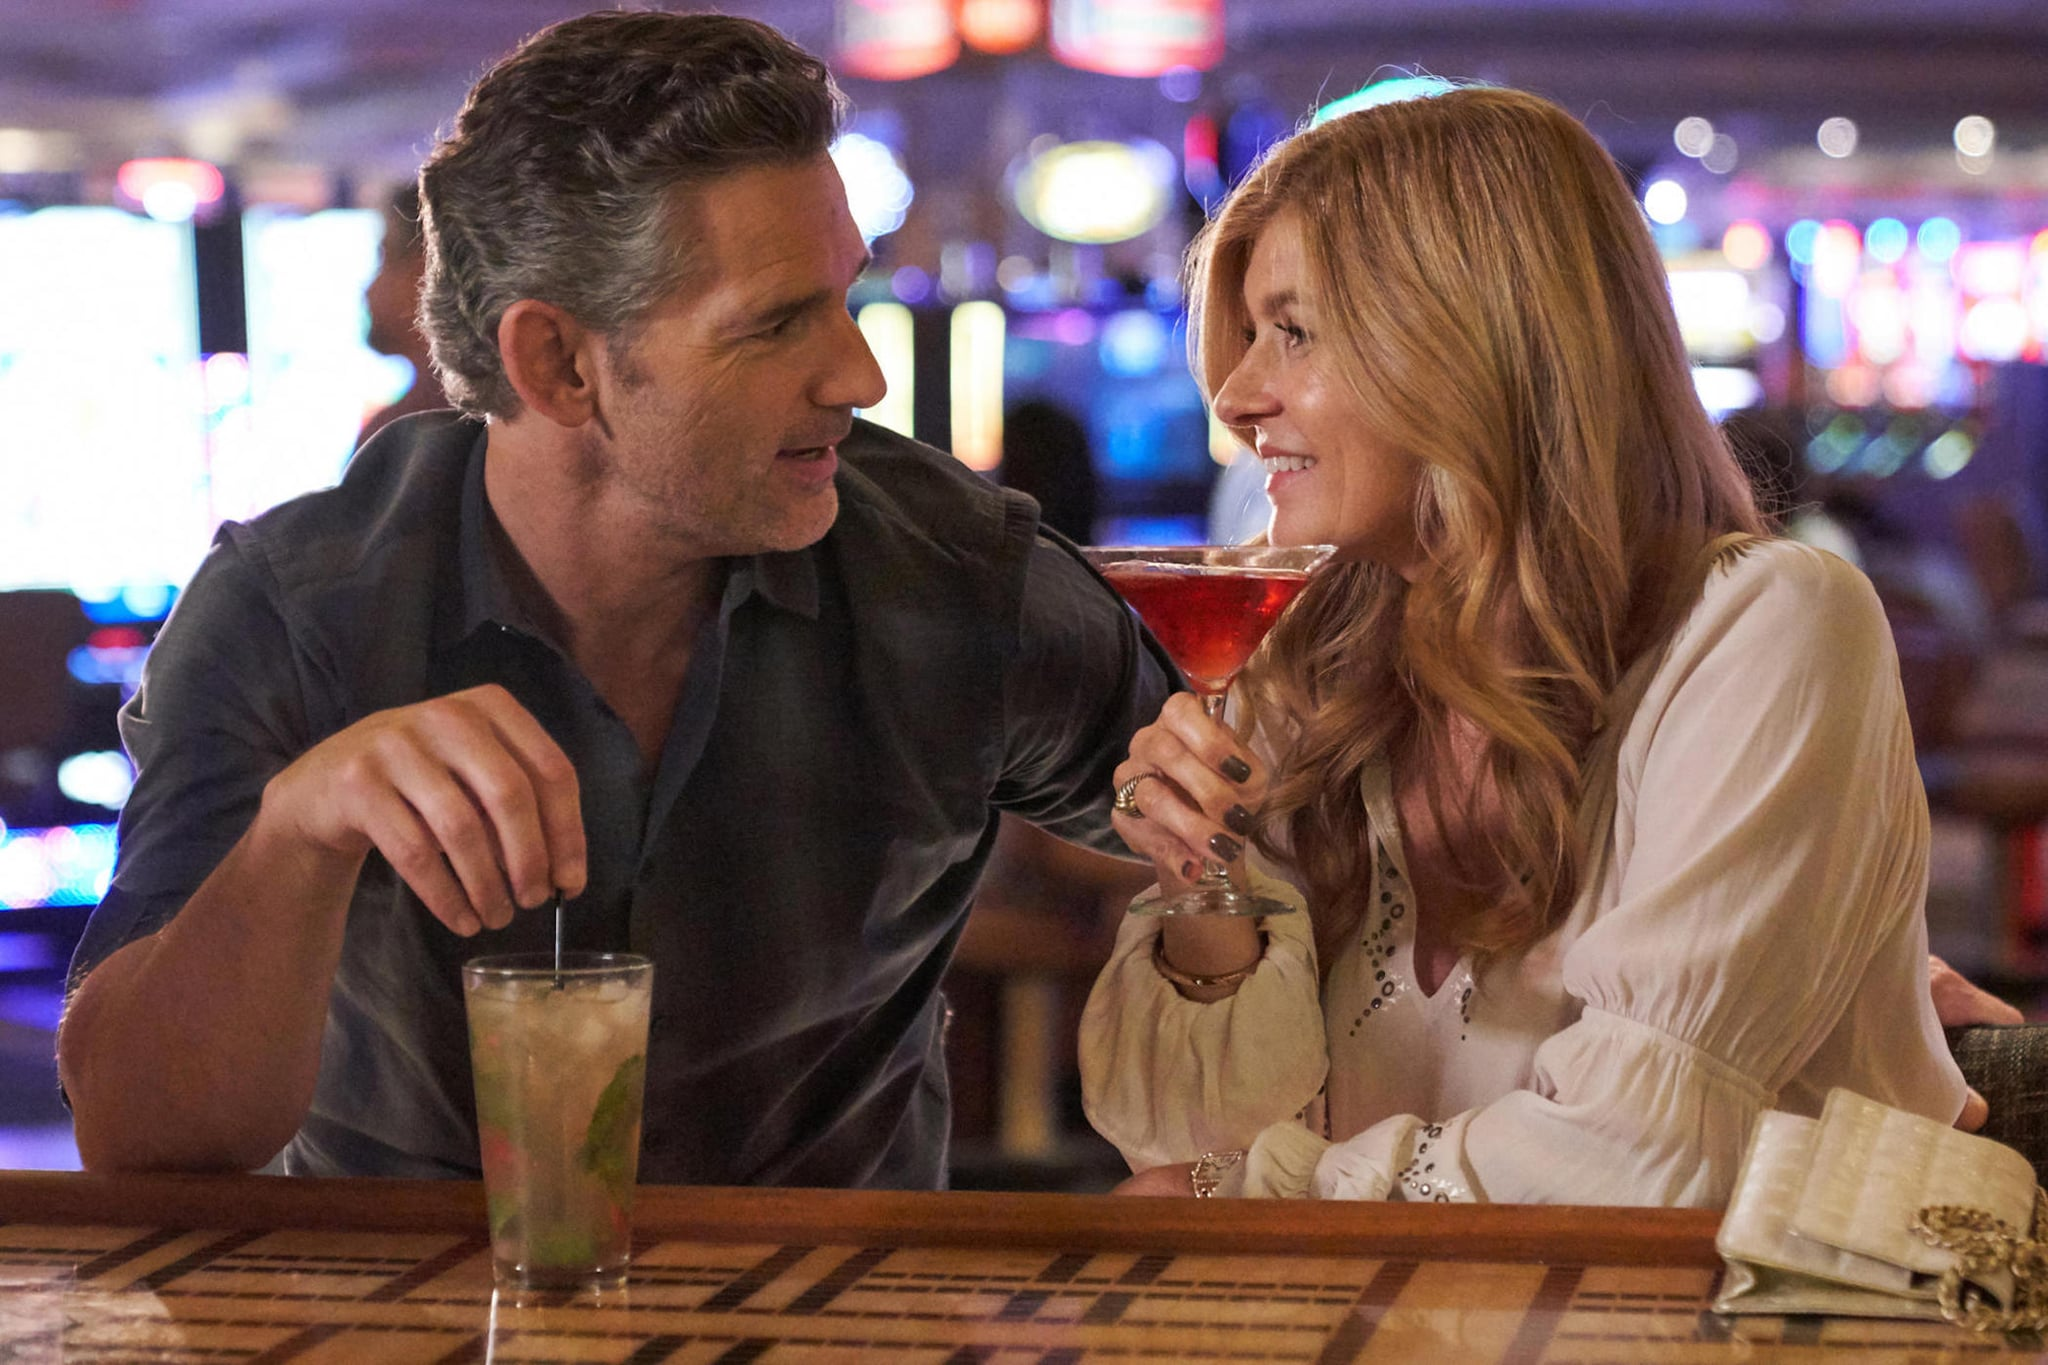 Dirty John Is Back With a New Sordid Tale For Season 2 — Here's What We Know